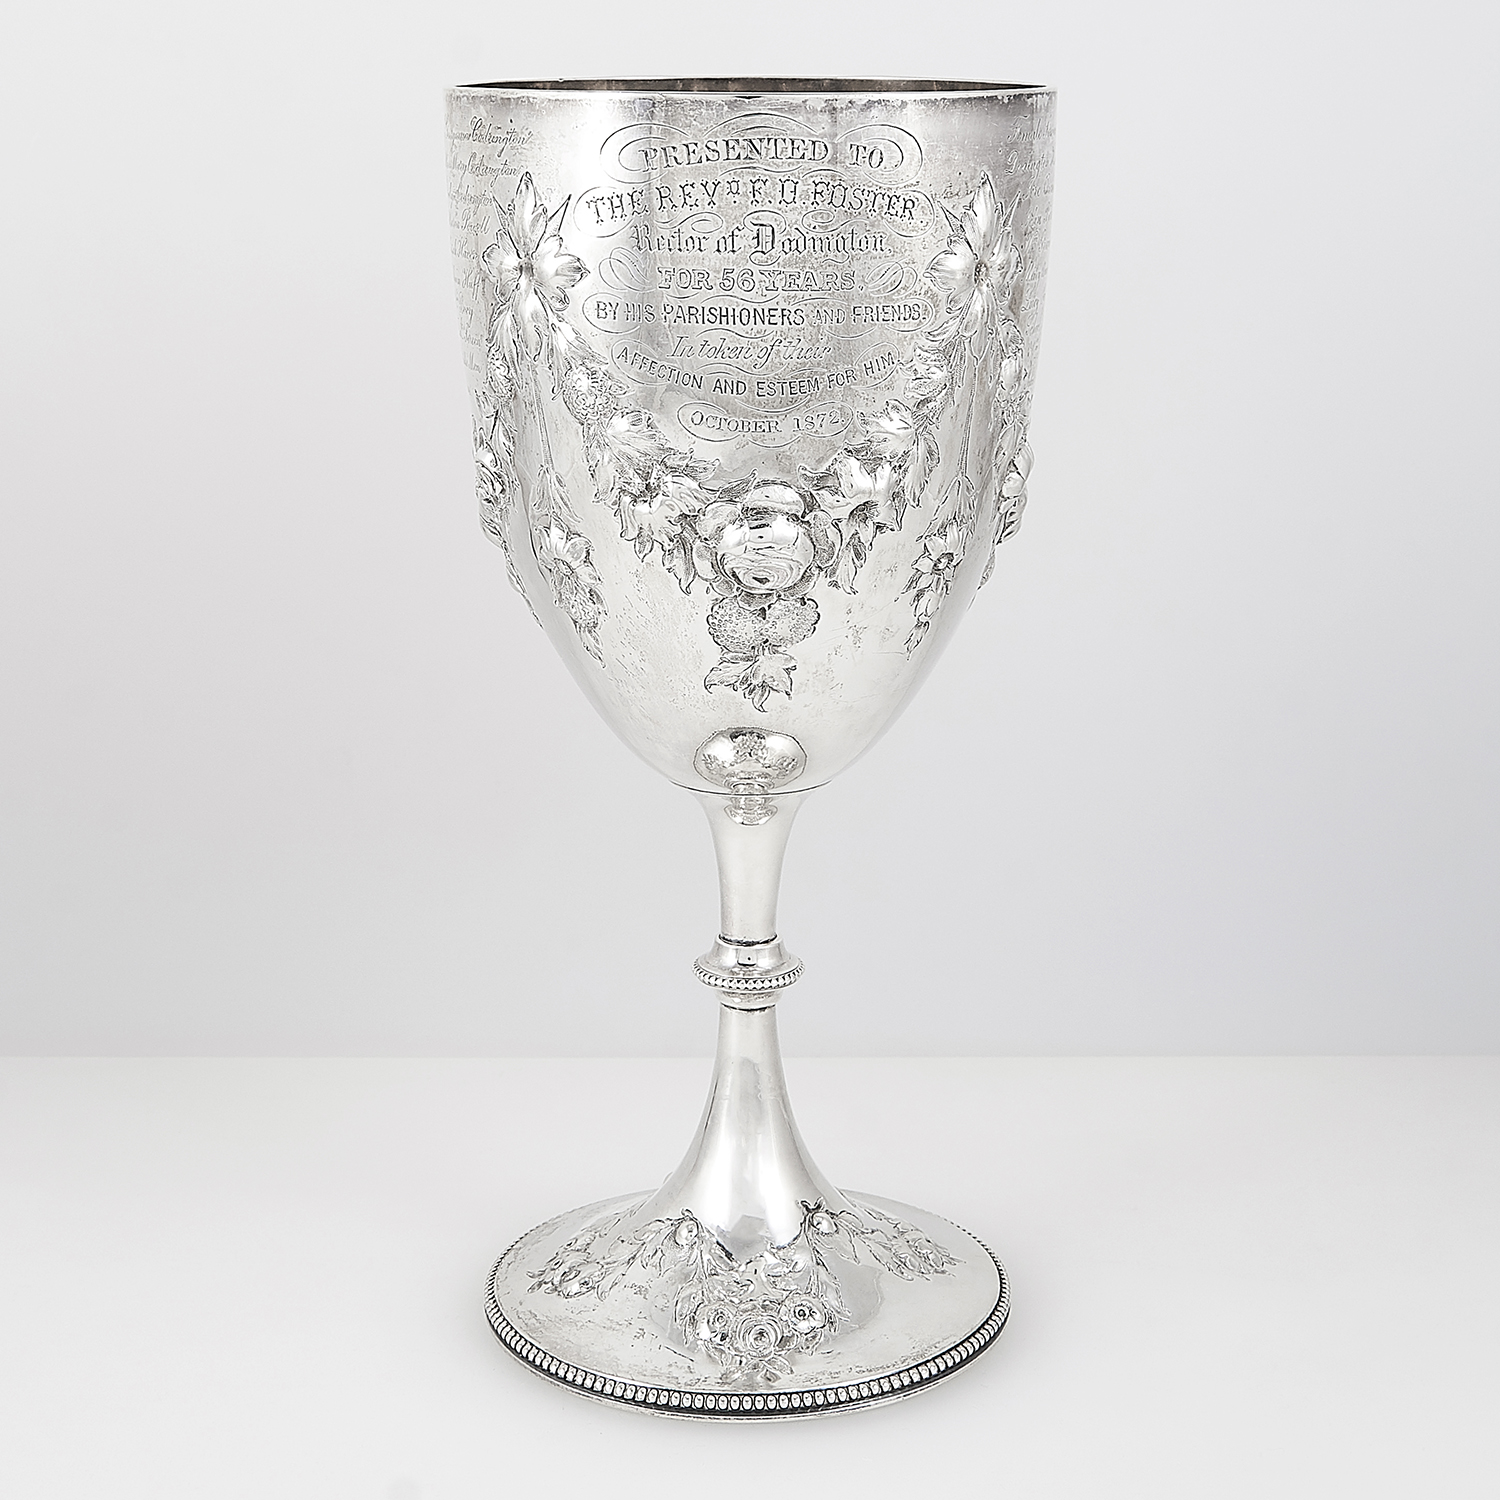 Los 15 - ANTIQUE VICTORIAN STERLING SILVER GOBLET, WILLIAM EVANS, LONDON 1871 the rounded body with chased